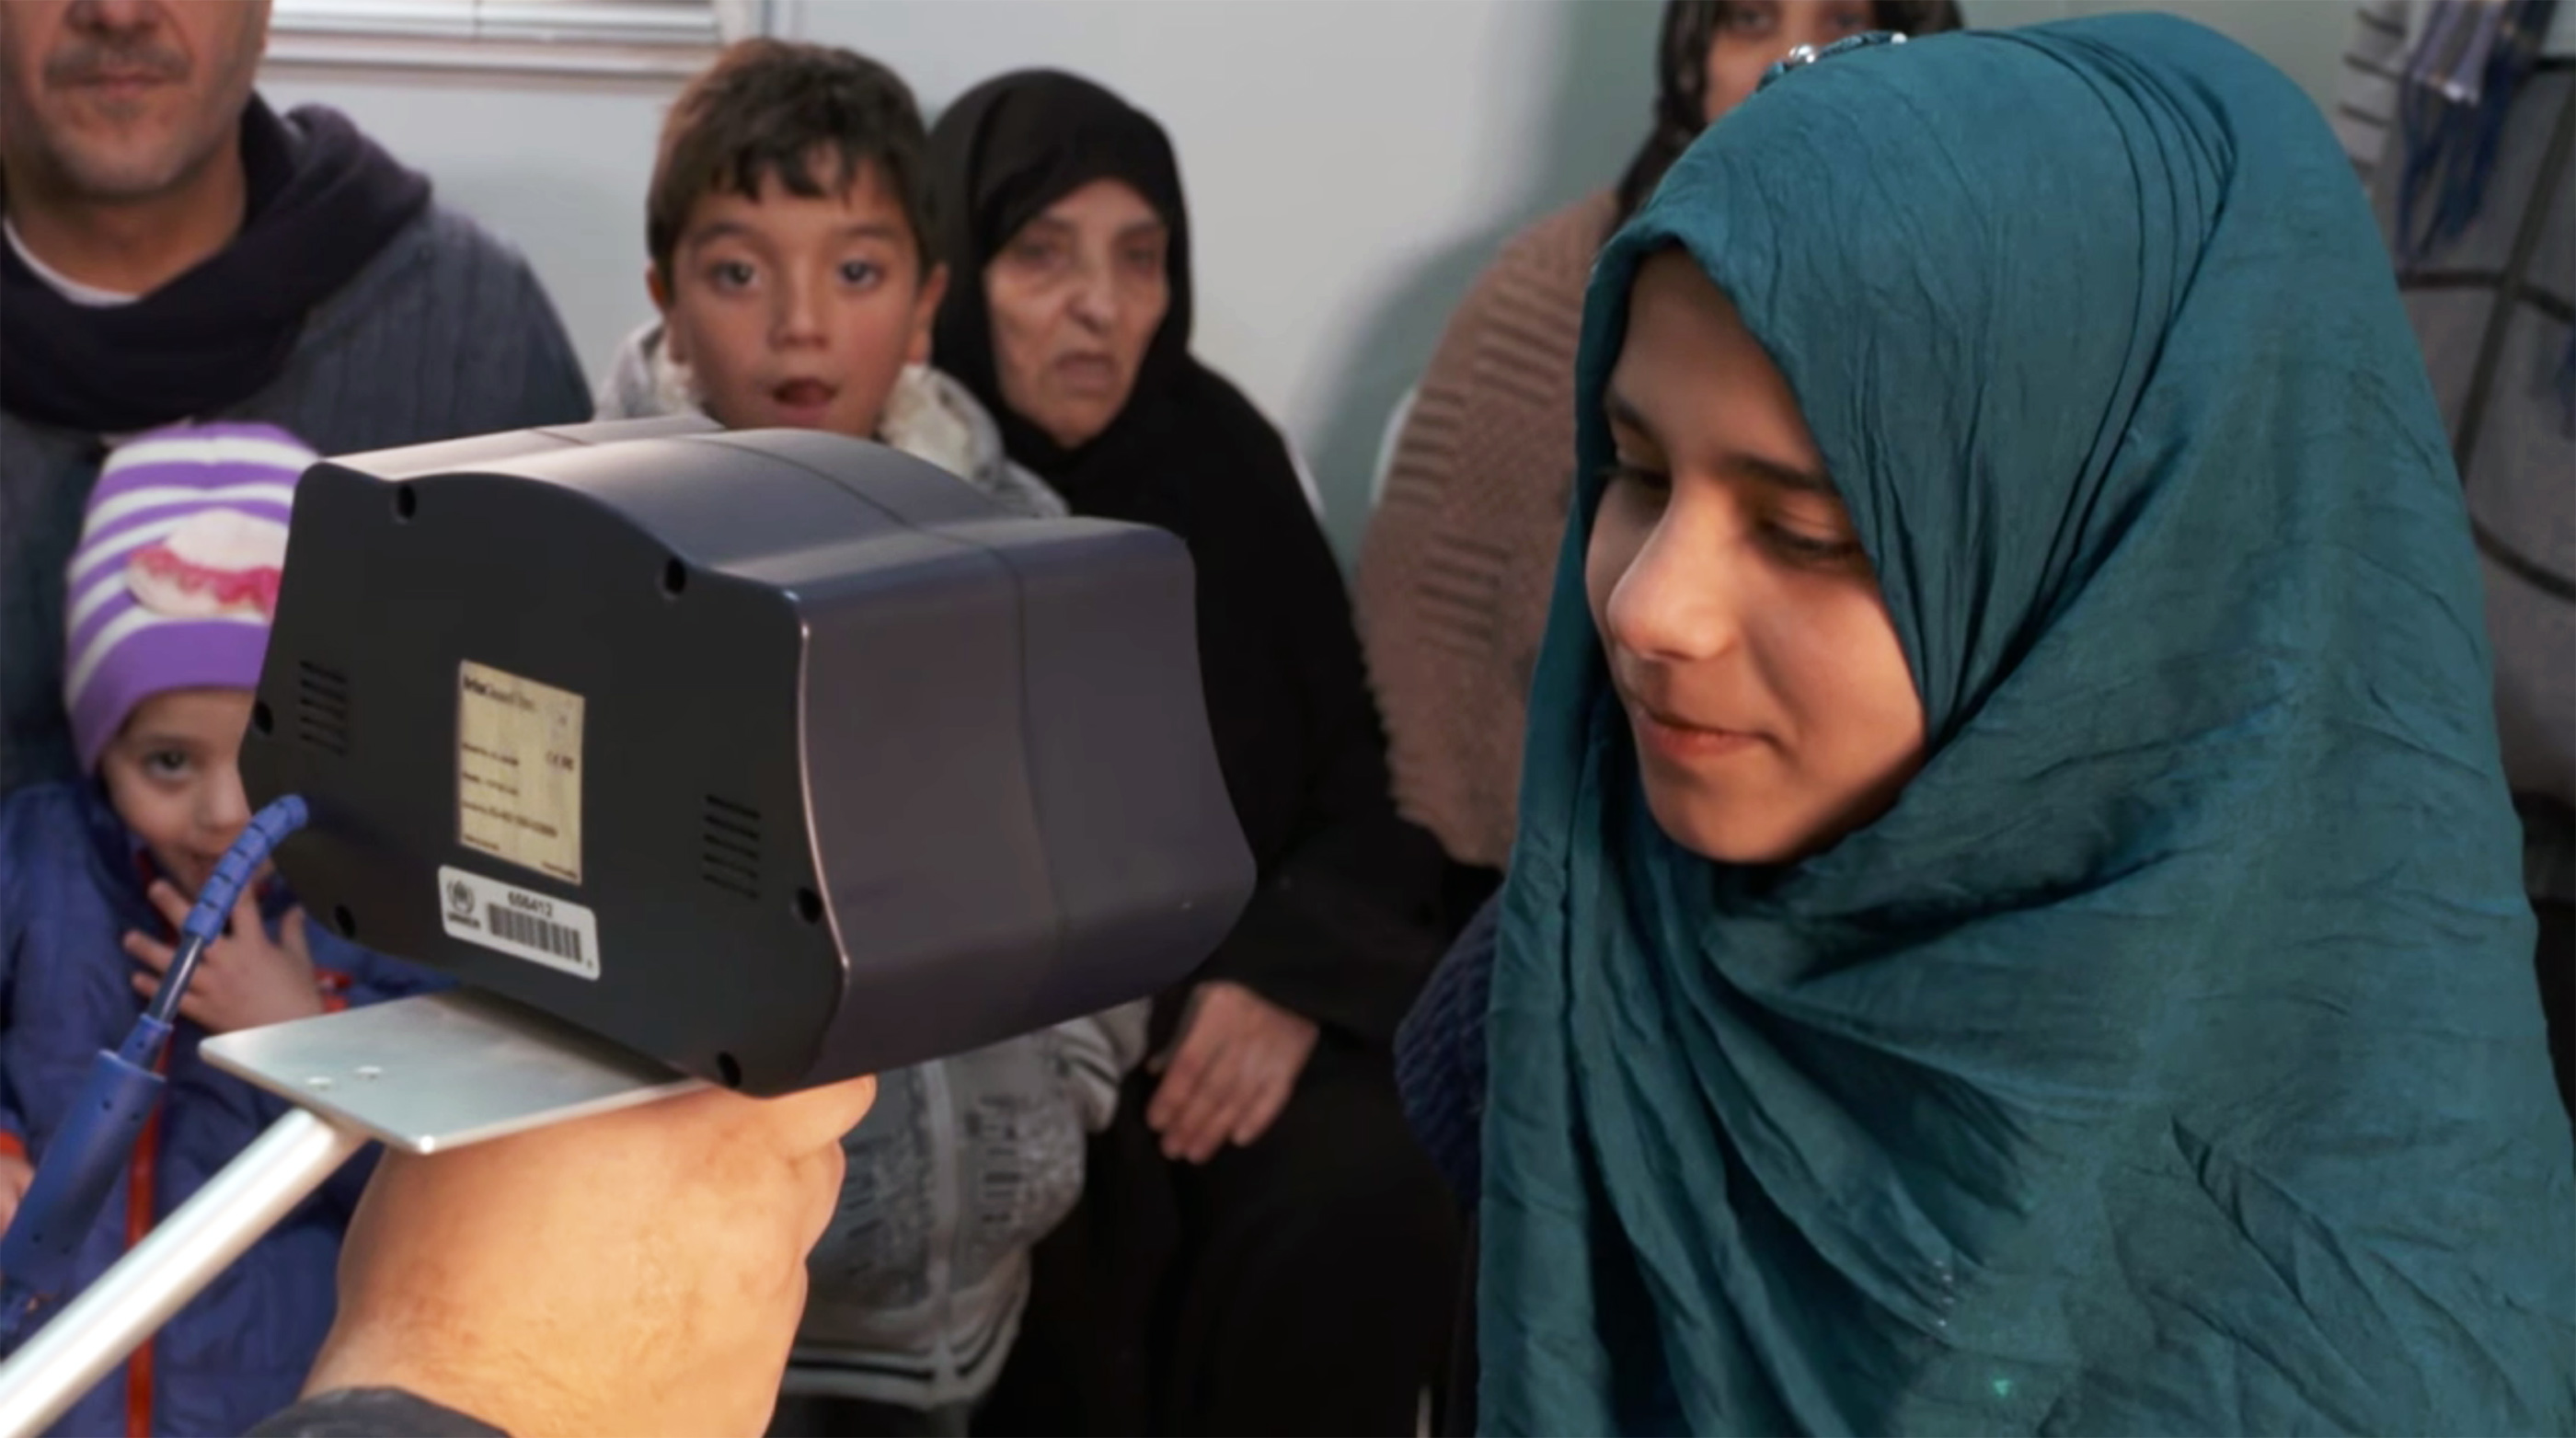 A UN worker scans the iris of a Syrian girl registering as a refugee at the Zaatari camp in Jordan.